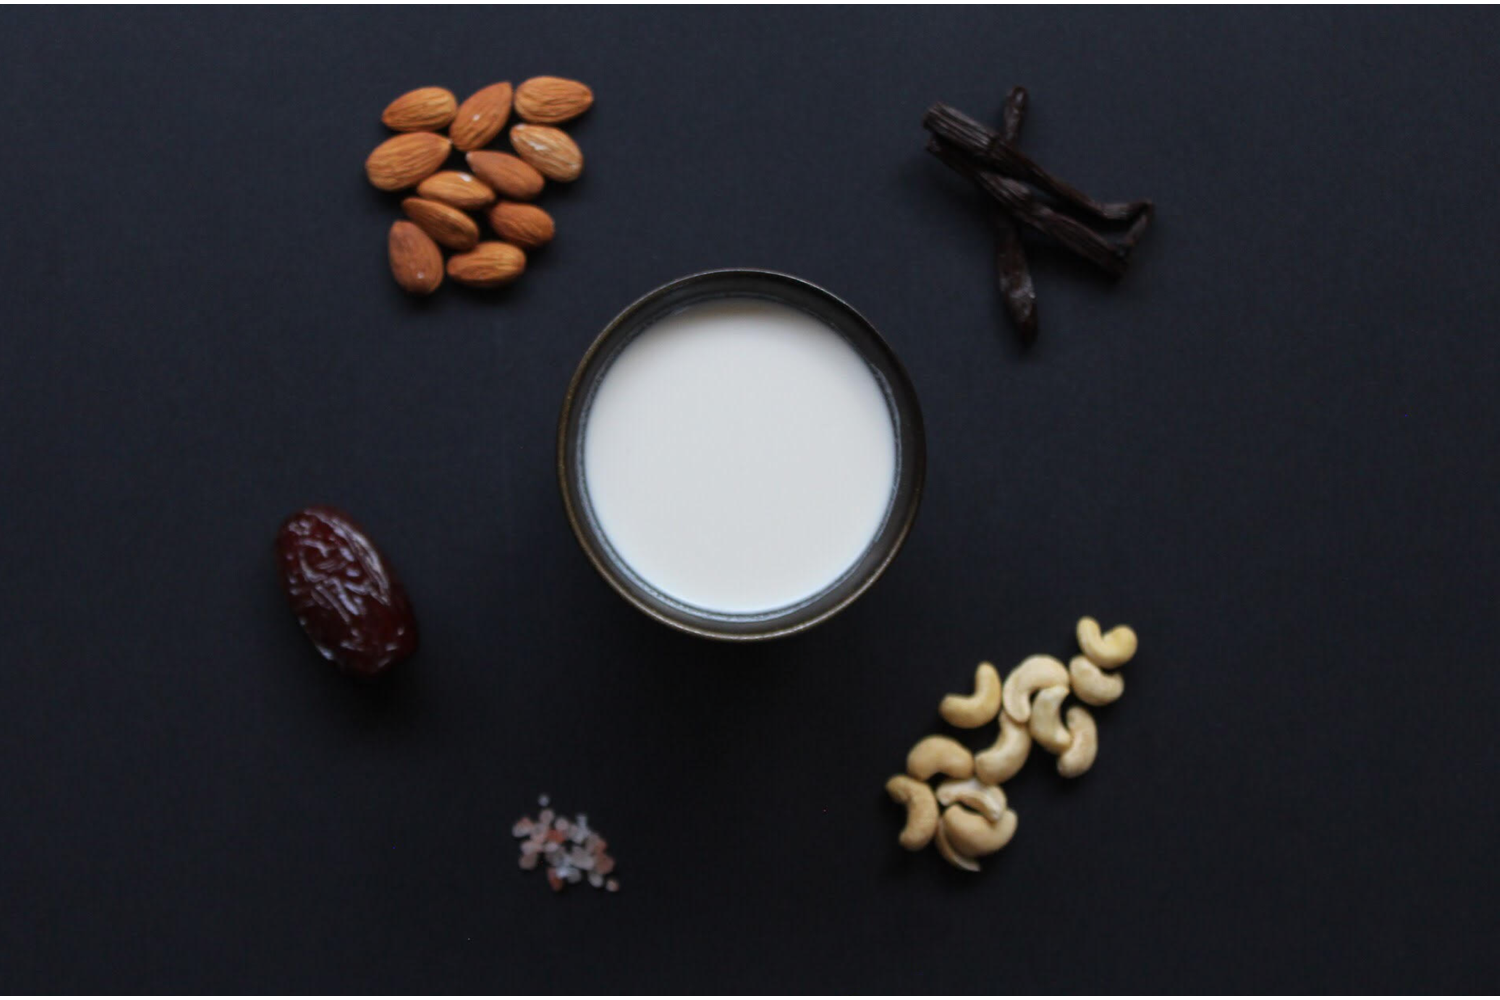 A complete, guilt free meal replacement. - Crafted with premium ingredients sourced from all over the world, Milk 2.0 is completely plant-based and free of any nasty additives, refined sugars and gluten. It also provides a huge variety of nutritional benefits.